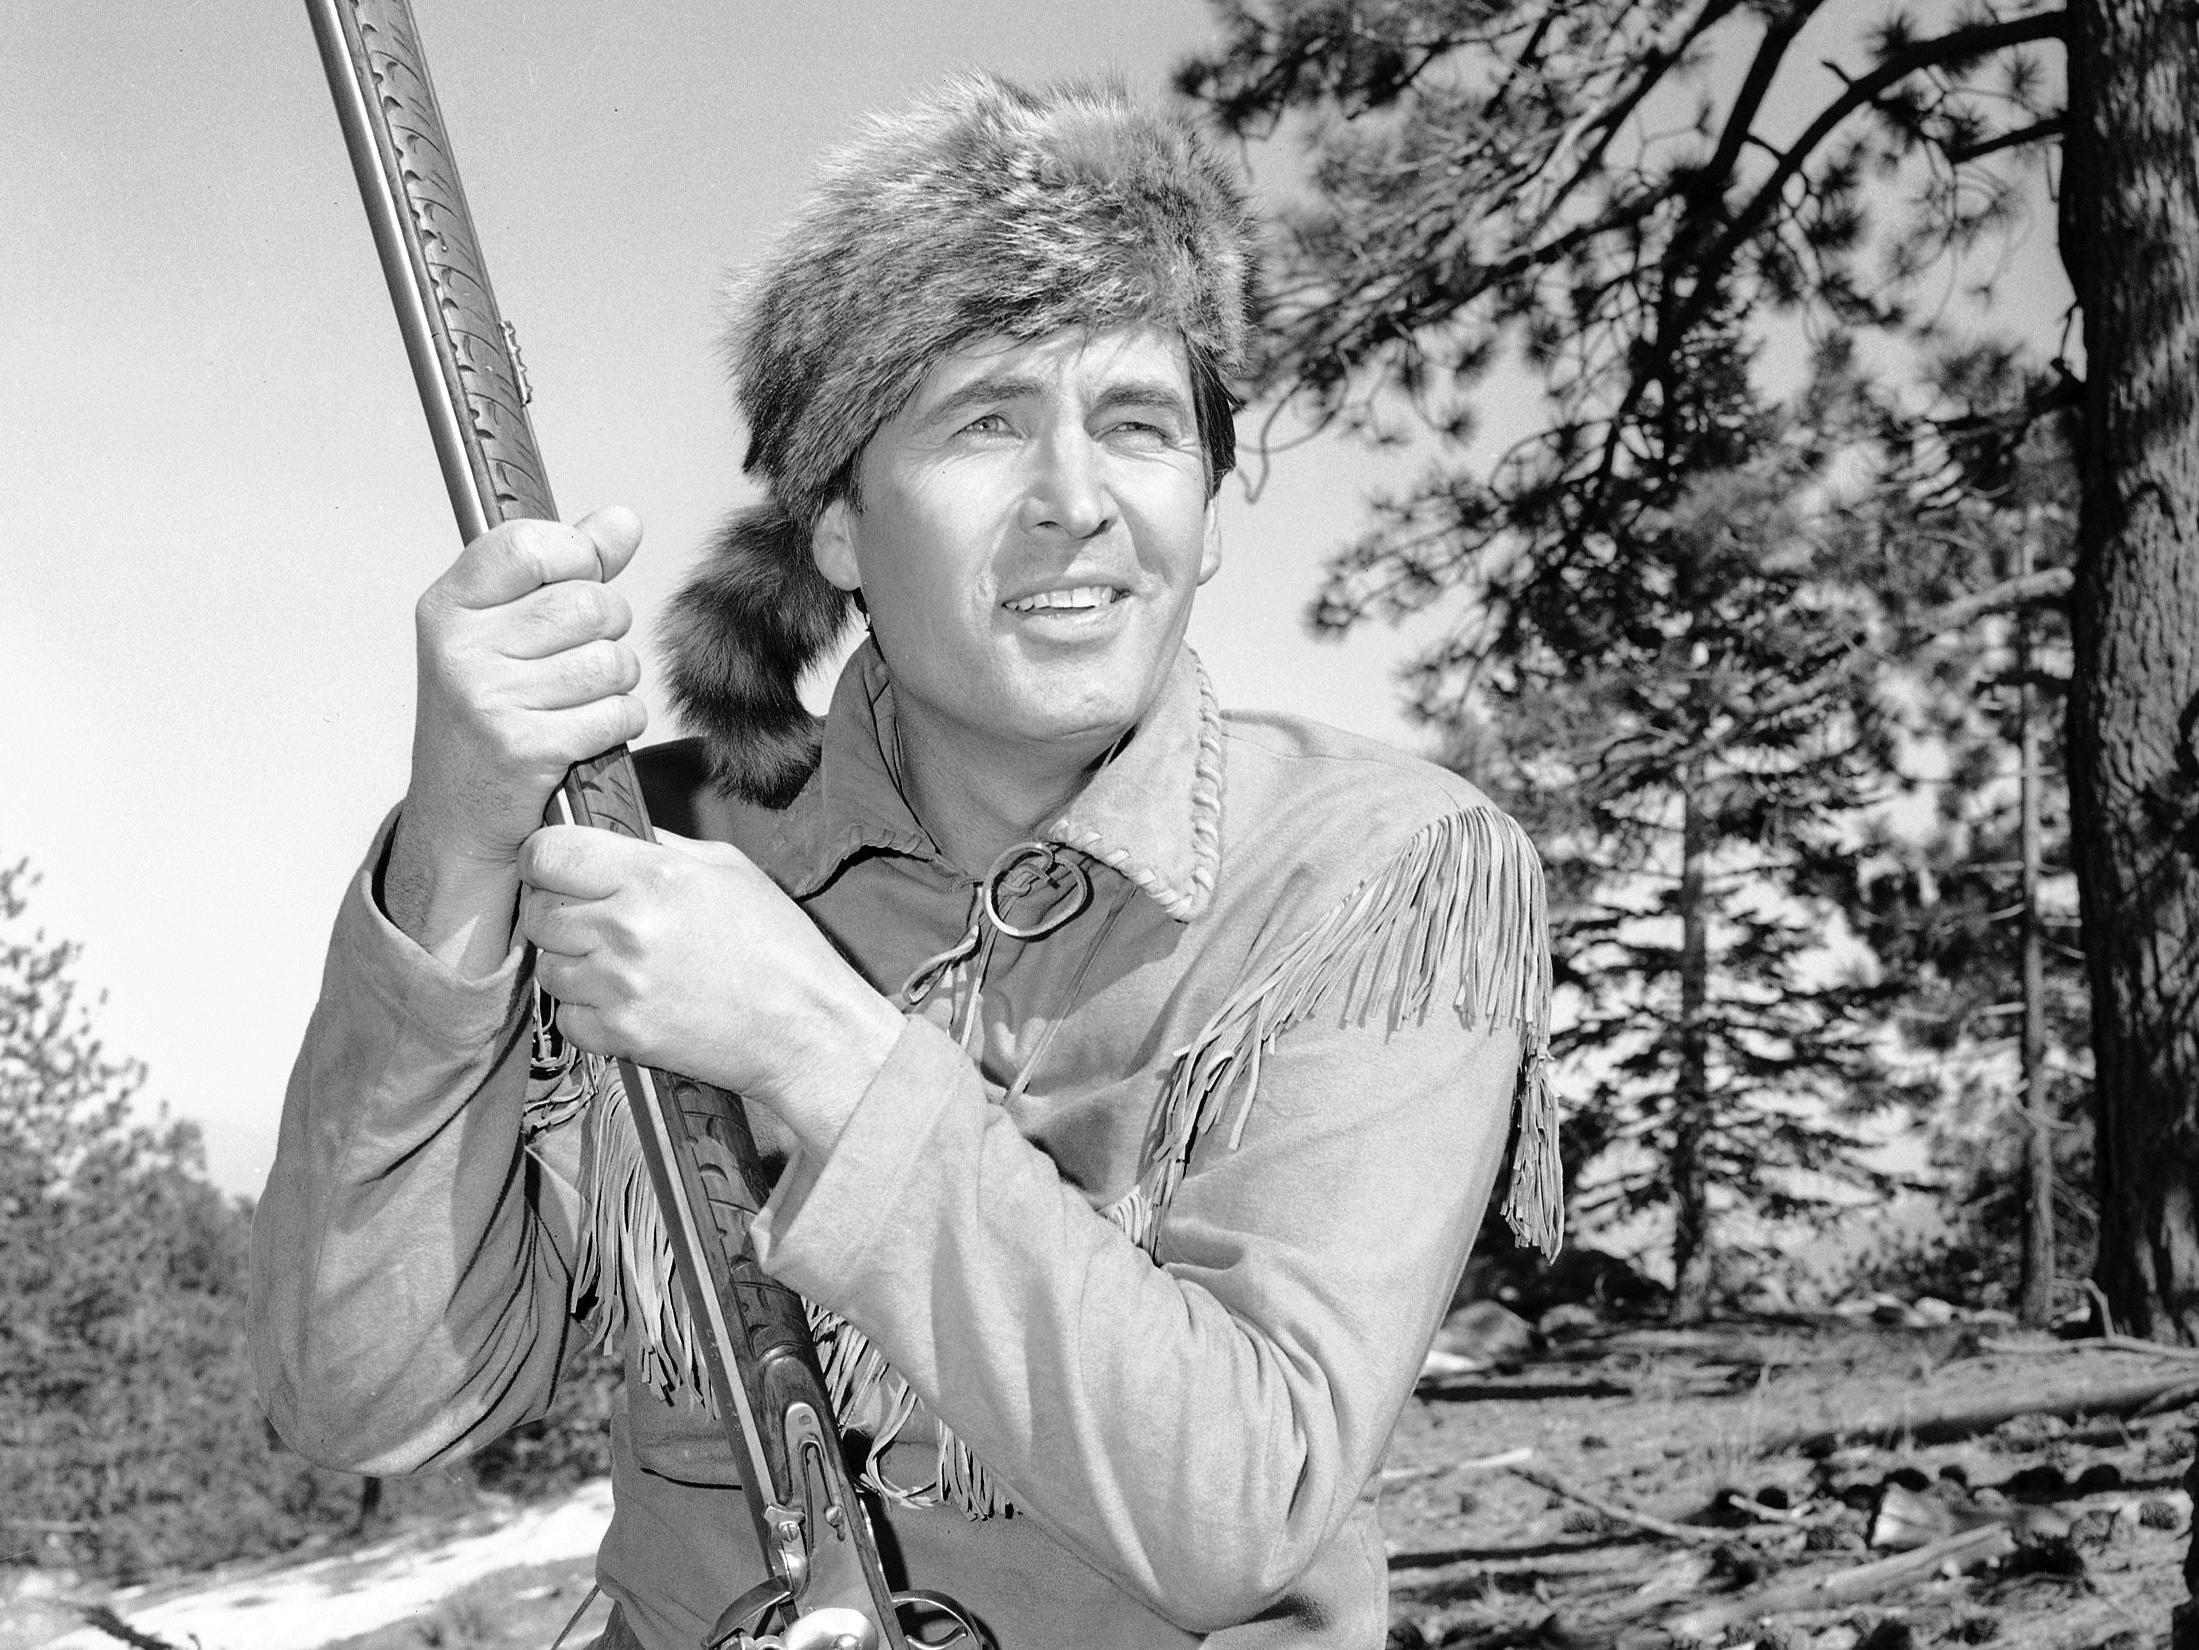 a review of the heroism of davy crockett Davy crockett's major life accomplishments were that he was a tennessee frontiersman, a colonel in the tennessee militia, and he served his country as a tennessee state legislator and a representative in the us house of representatives.